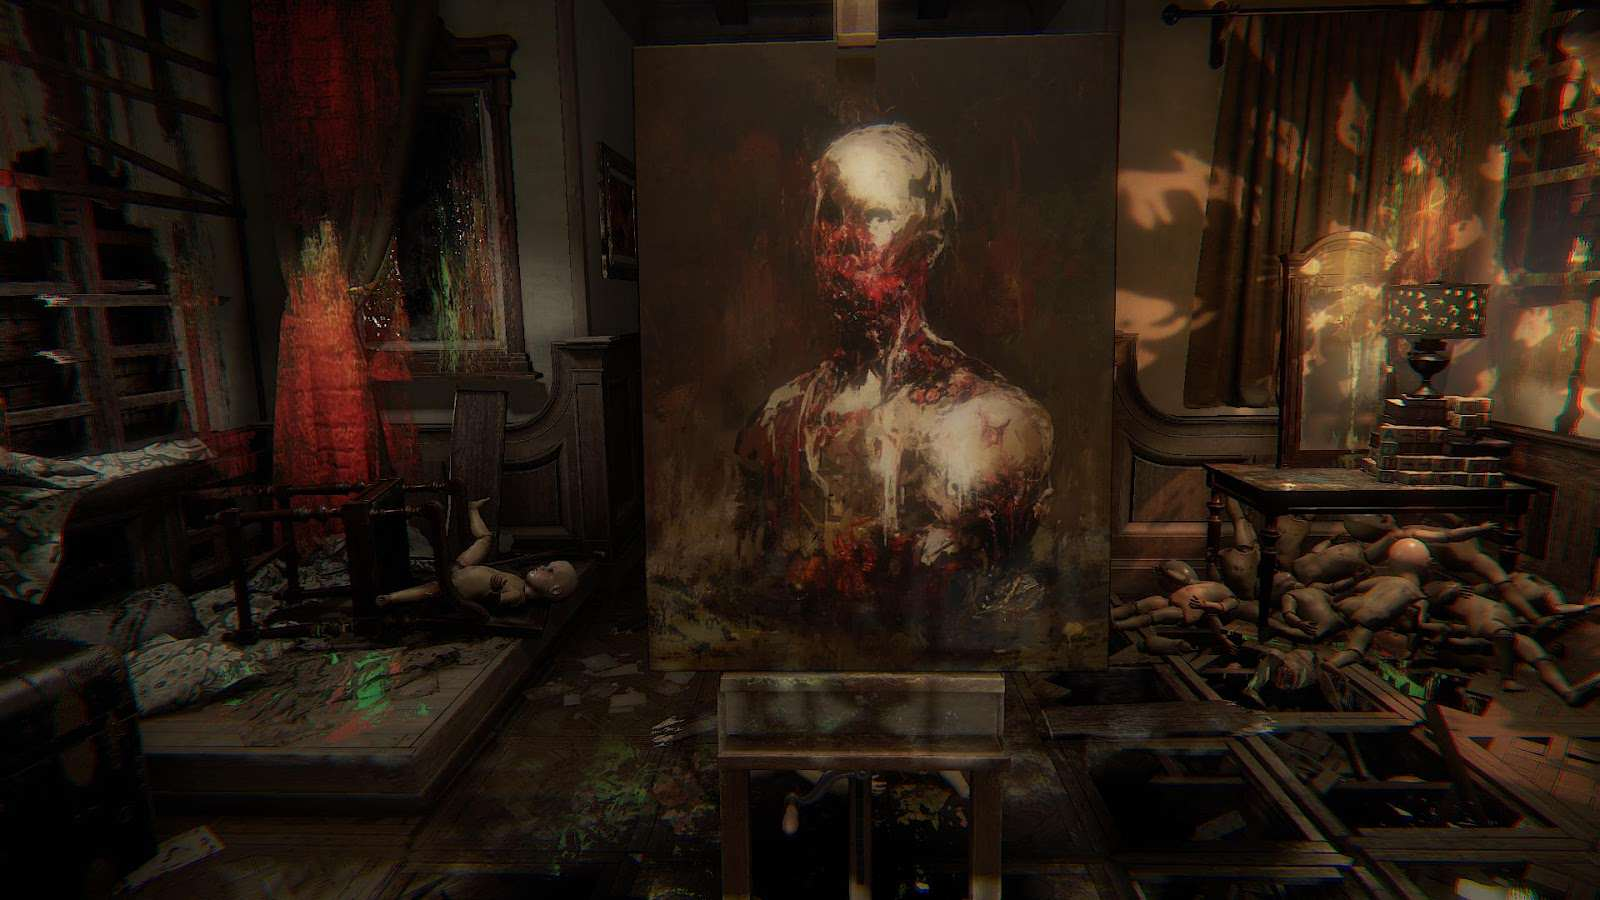 Layers Of Fear 2015 09 30 20 50 51 21 30 Minutes Of Creepy, Terrifying Layers Of Fear Gameplay